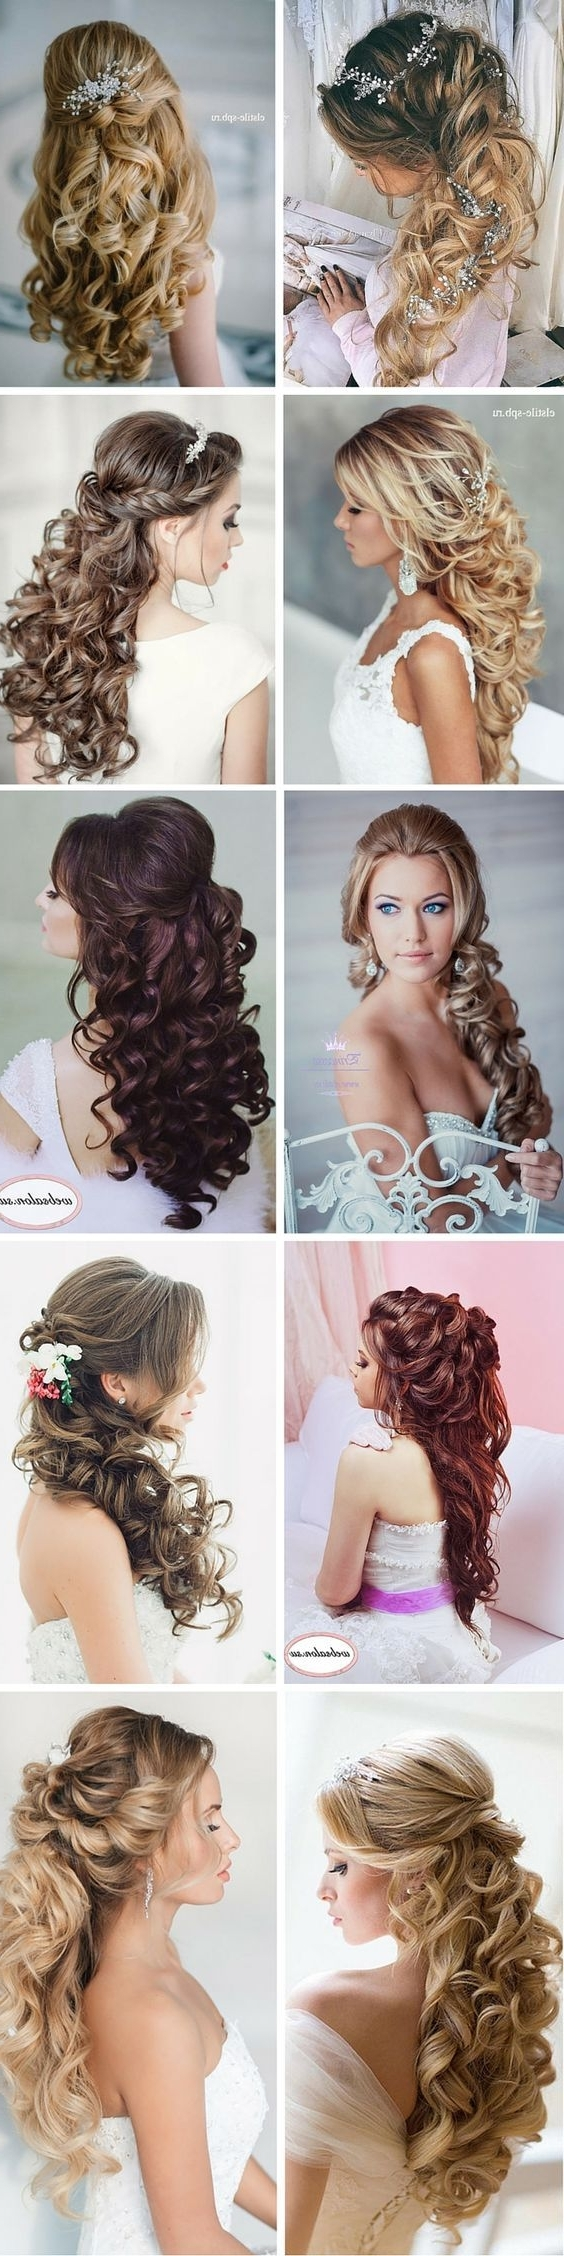 2020 Popular Wedding Hairstyles For Long Thick Curly Hair